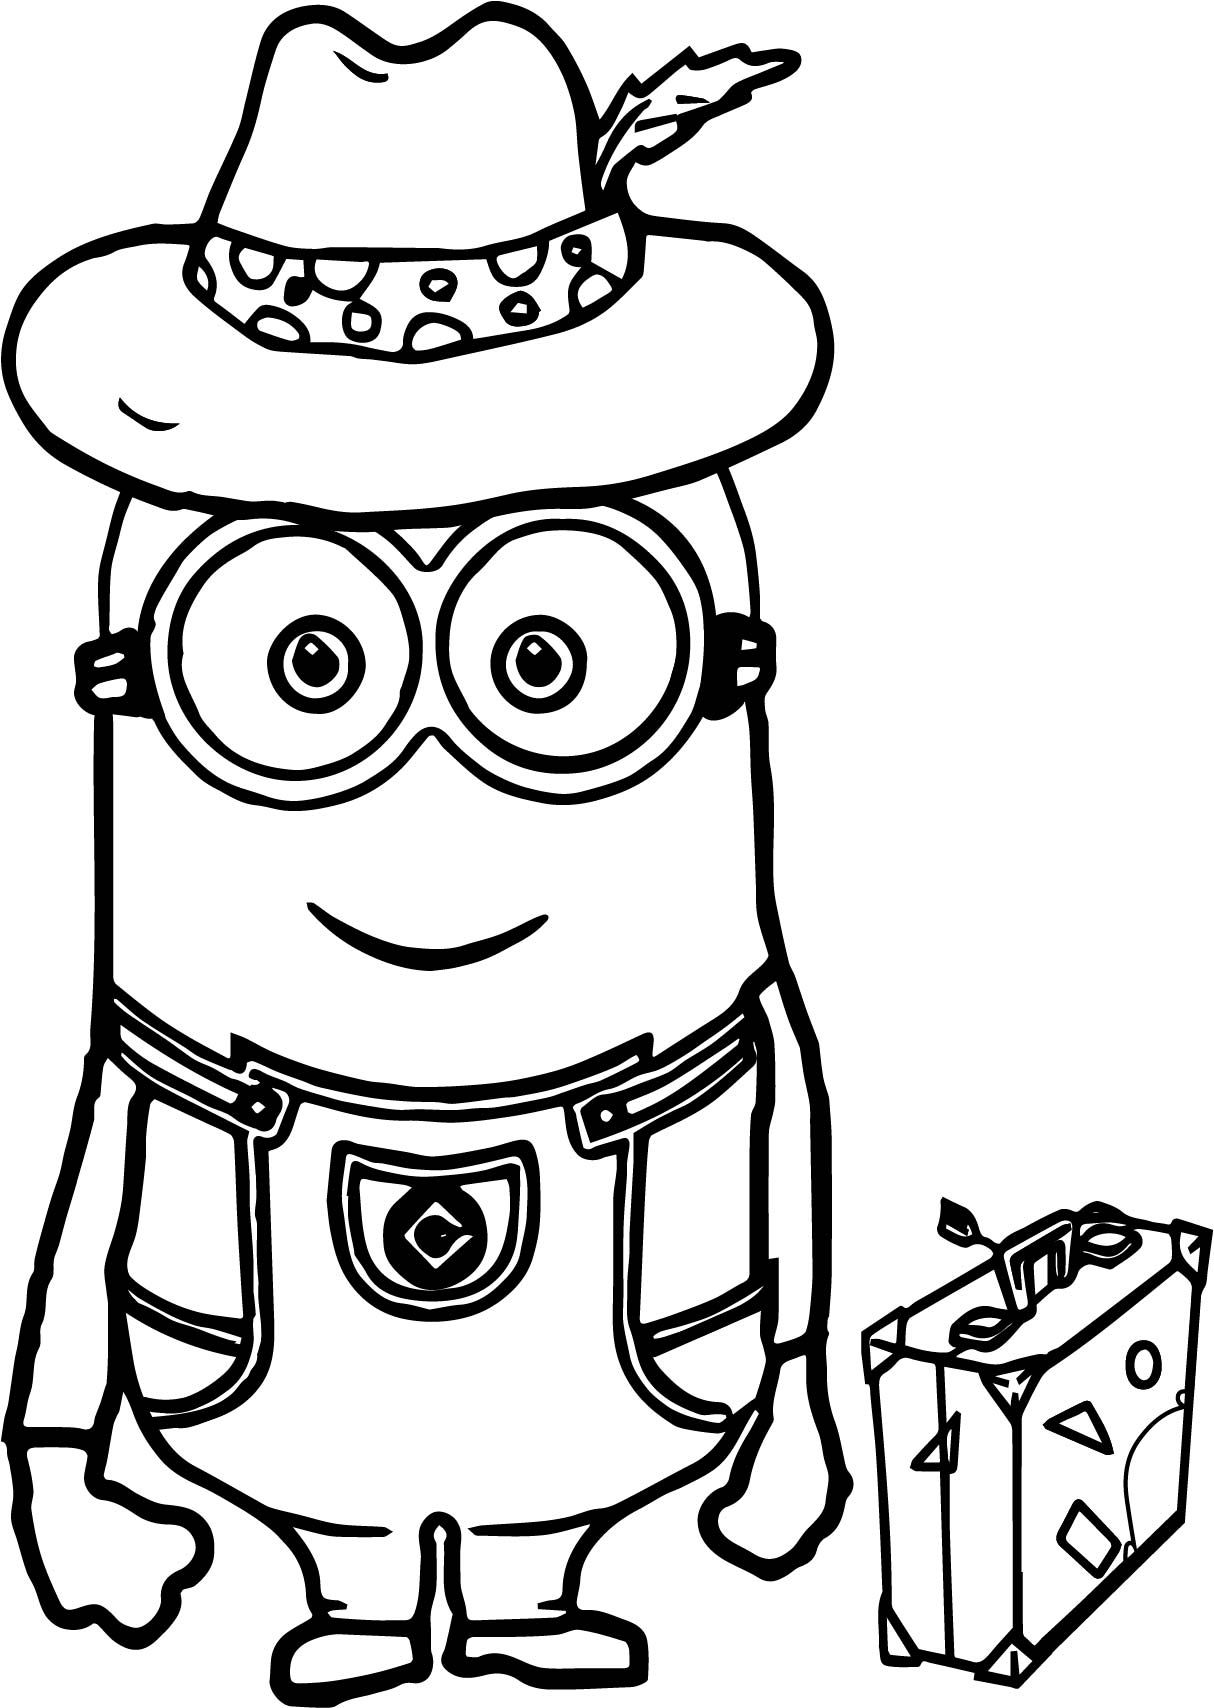 Minions Going Travel Coloring Page Wecoloringpage Frog